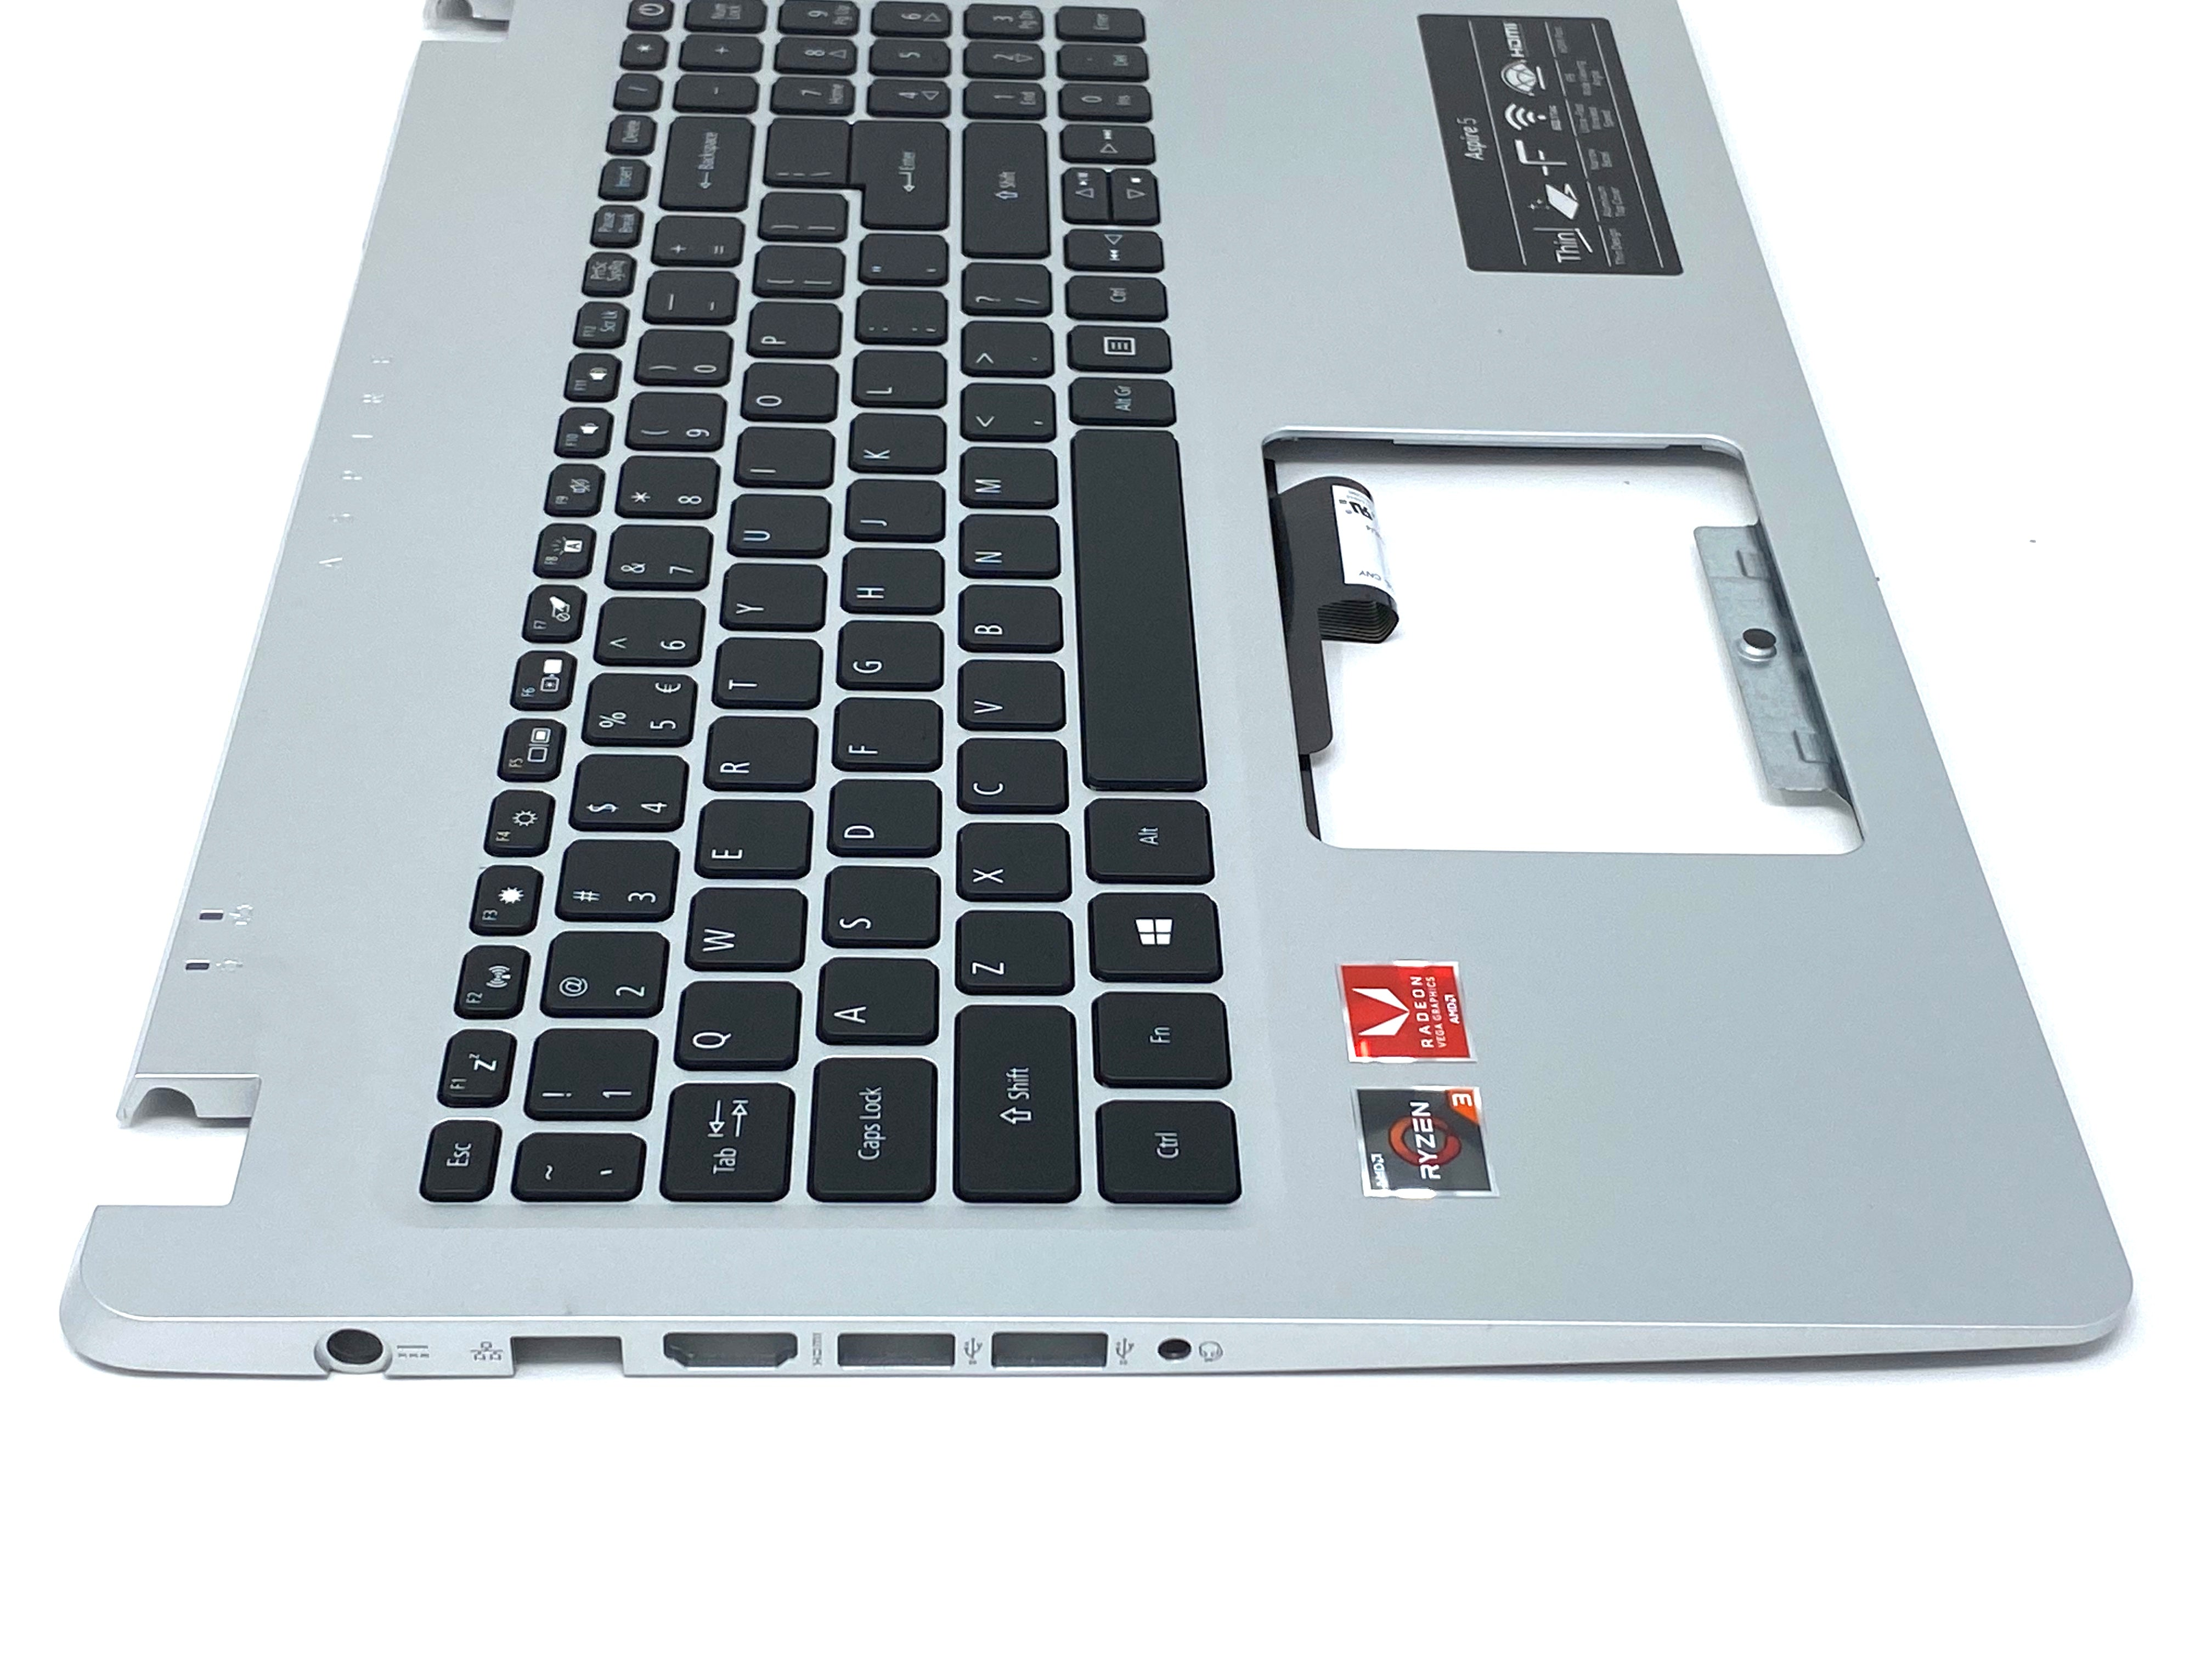 Acer Aspire 5 A515-43 Palmrest Keyboard Assembly (Silver) - 6B.HG8N2.001